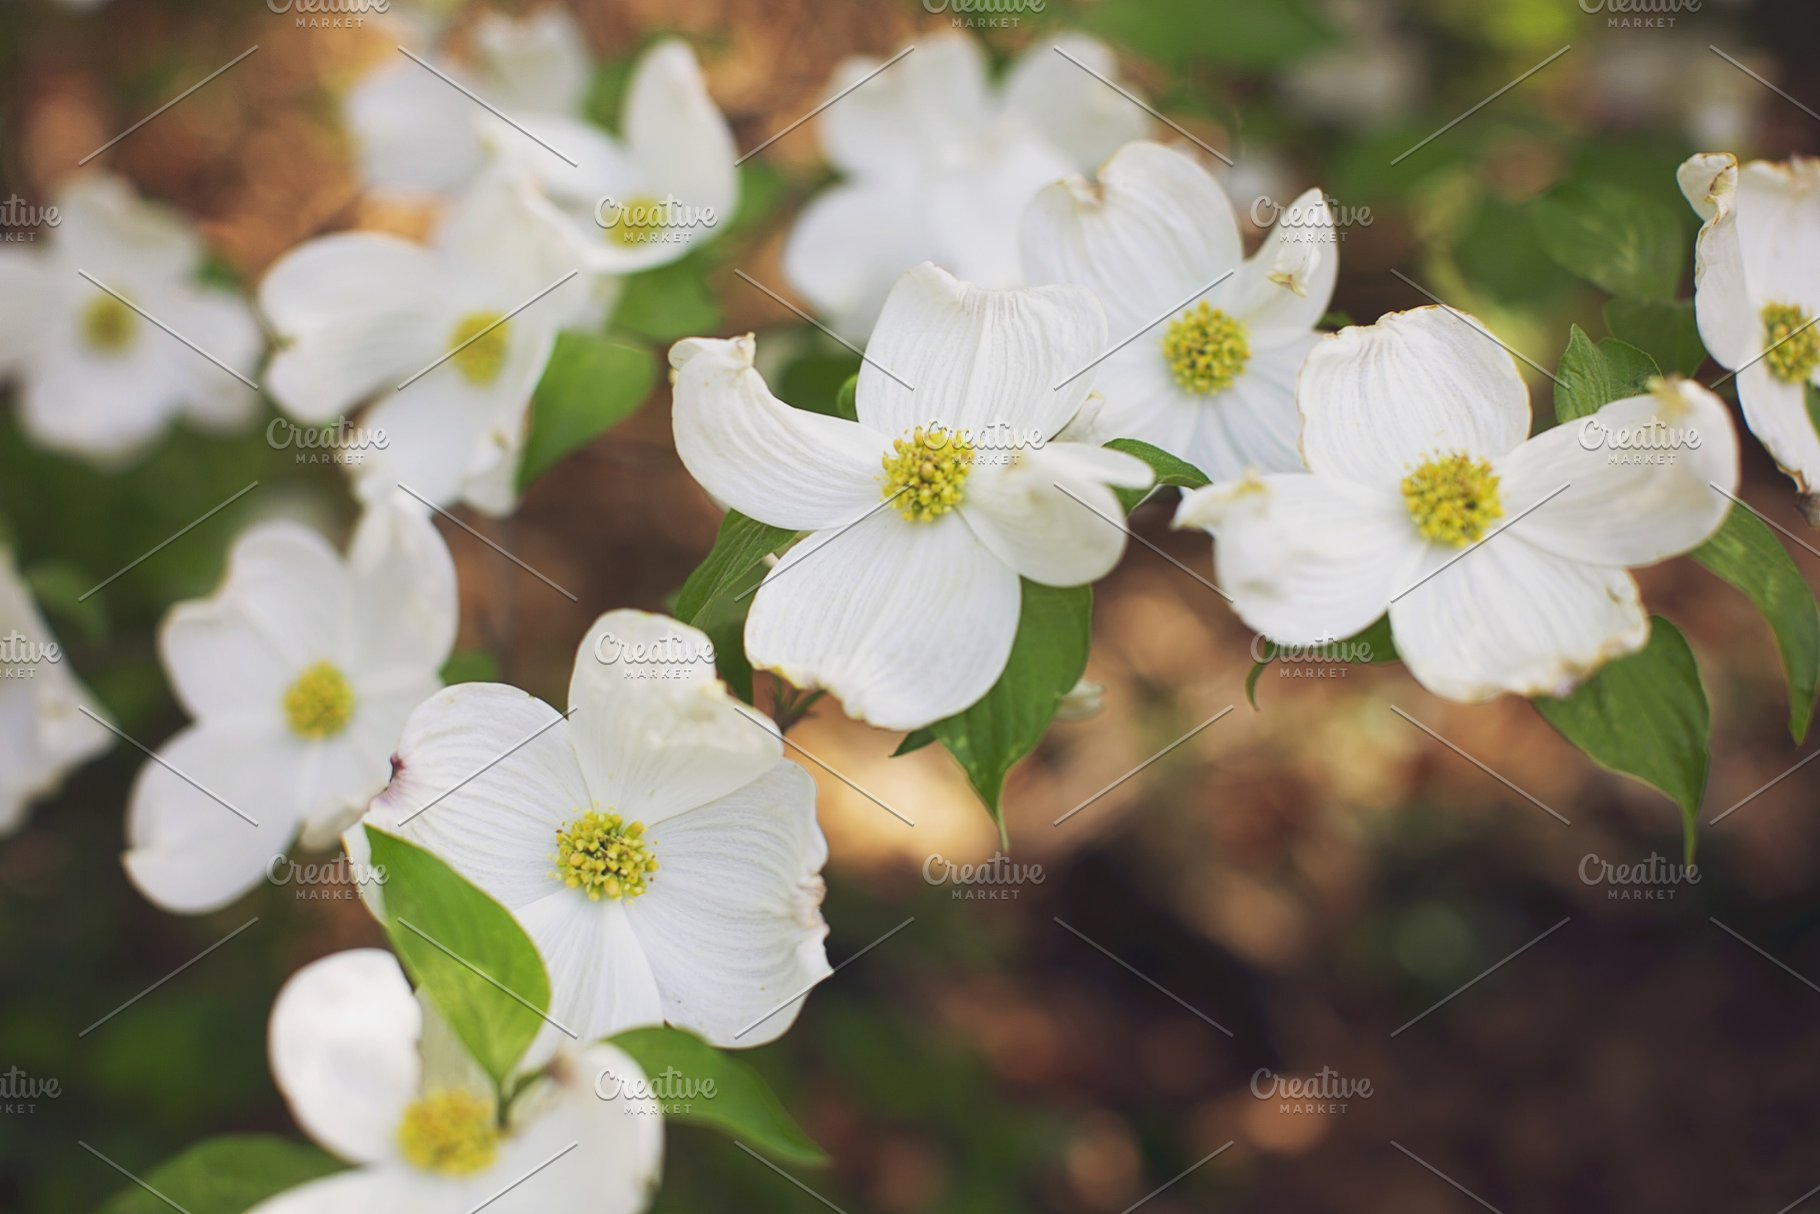 White Dogwood Tree Blossoms High Quality Nature Stock Photos